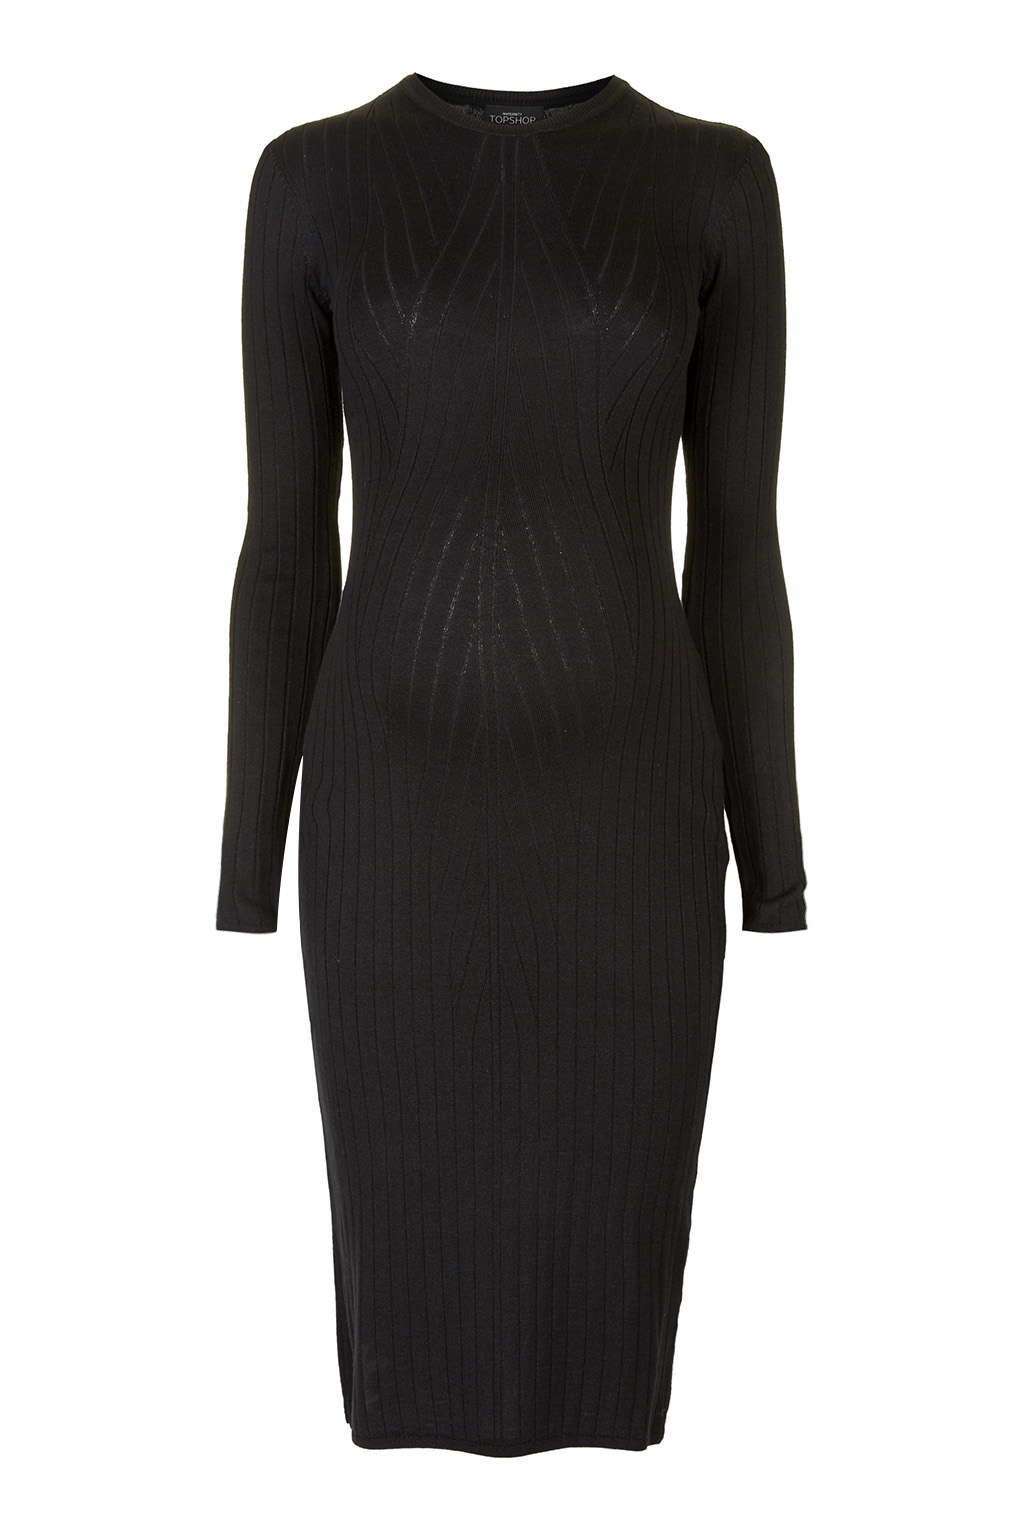 Topshop maternity long sleeve bodycon dress in black lyst gallery ombrellifo Gallery